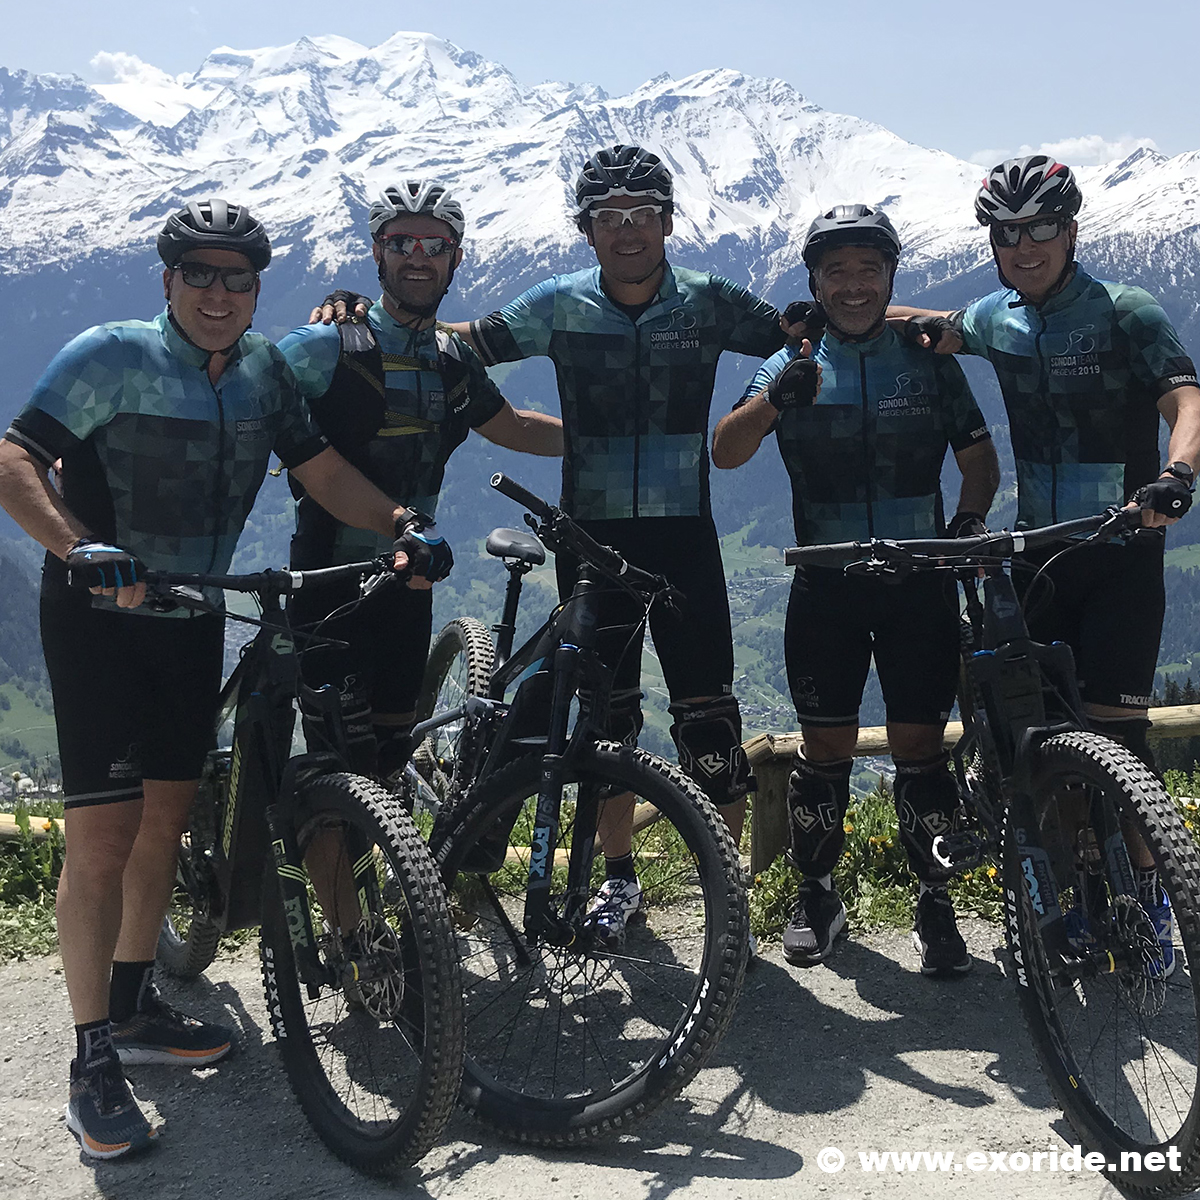 randonnees-bike groupe valais avec guide